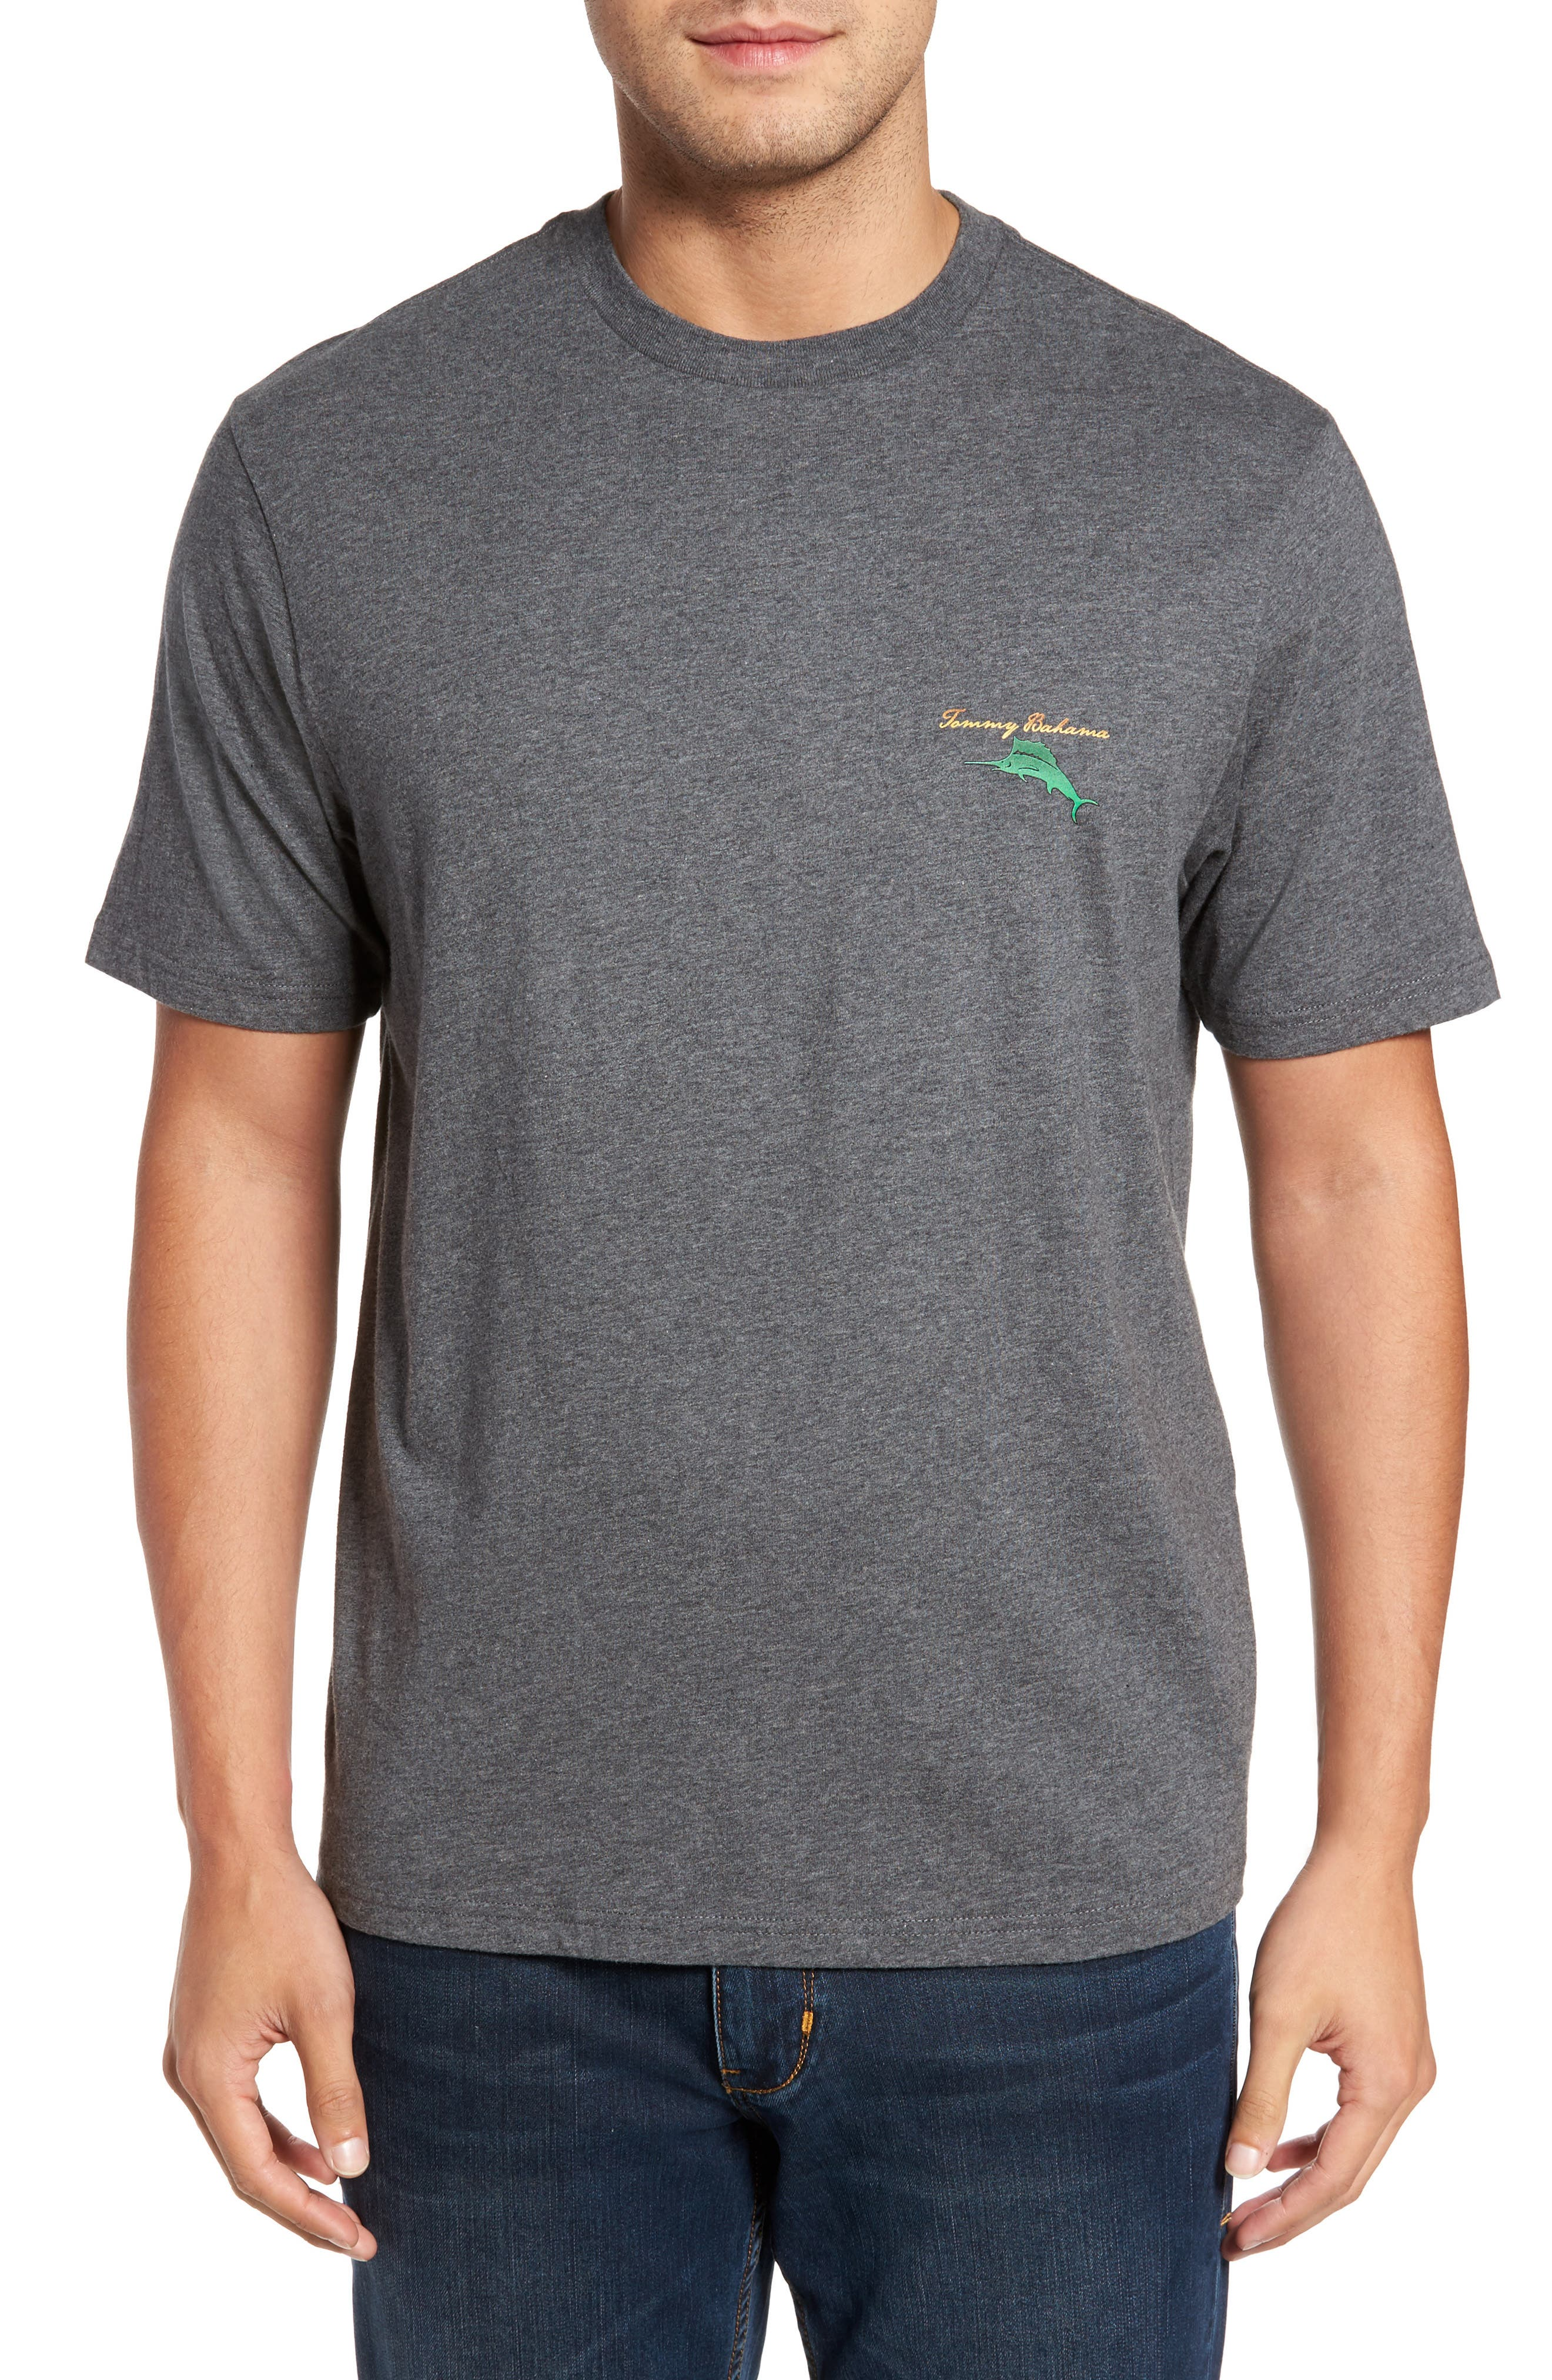 Tommy Bahama The Fire Is So Delightful Graphic T-Shirt